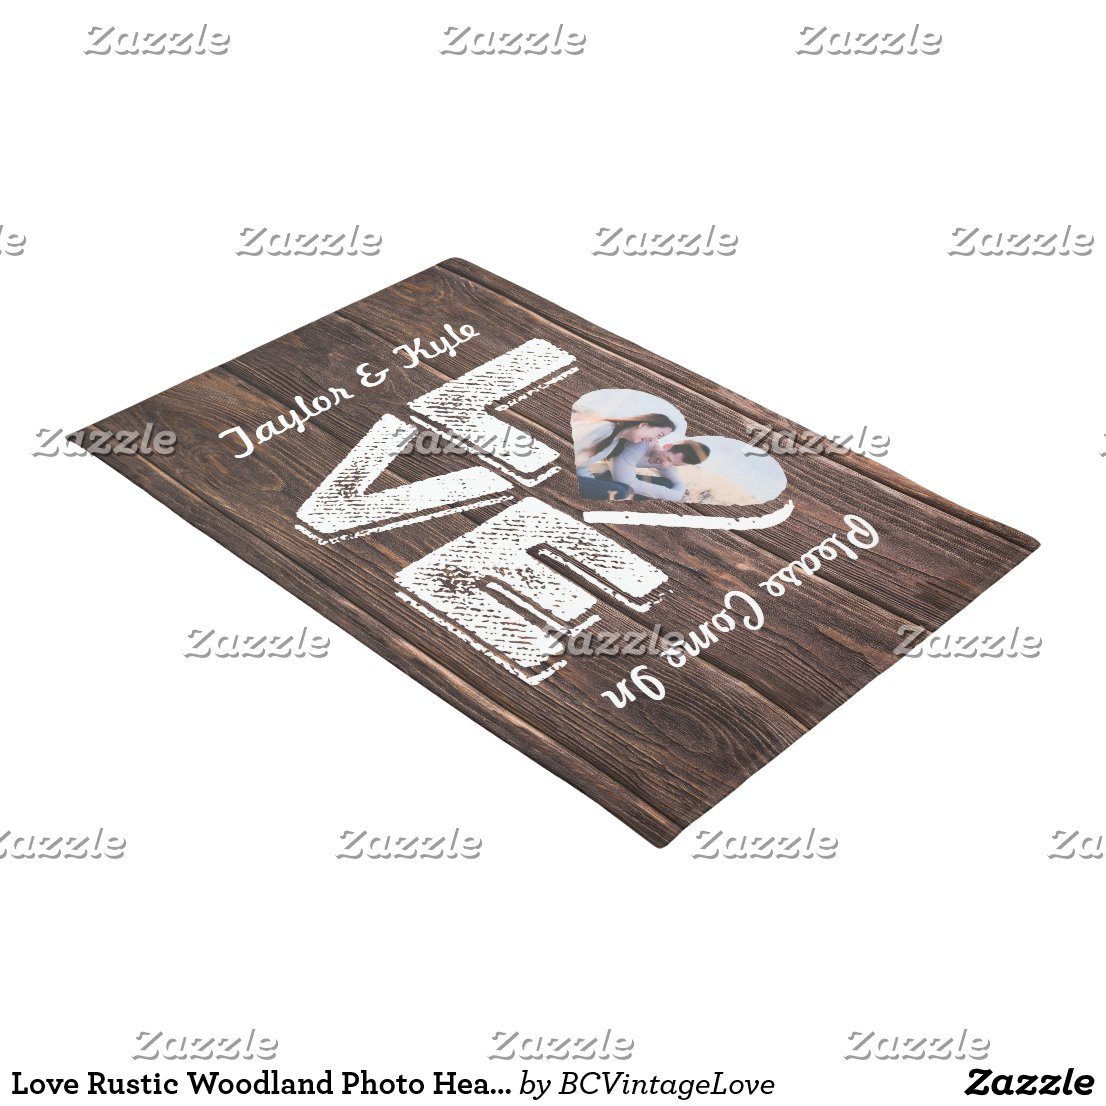 Love Rustic Woodland Photo Heart Frame Monogram Doormat